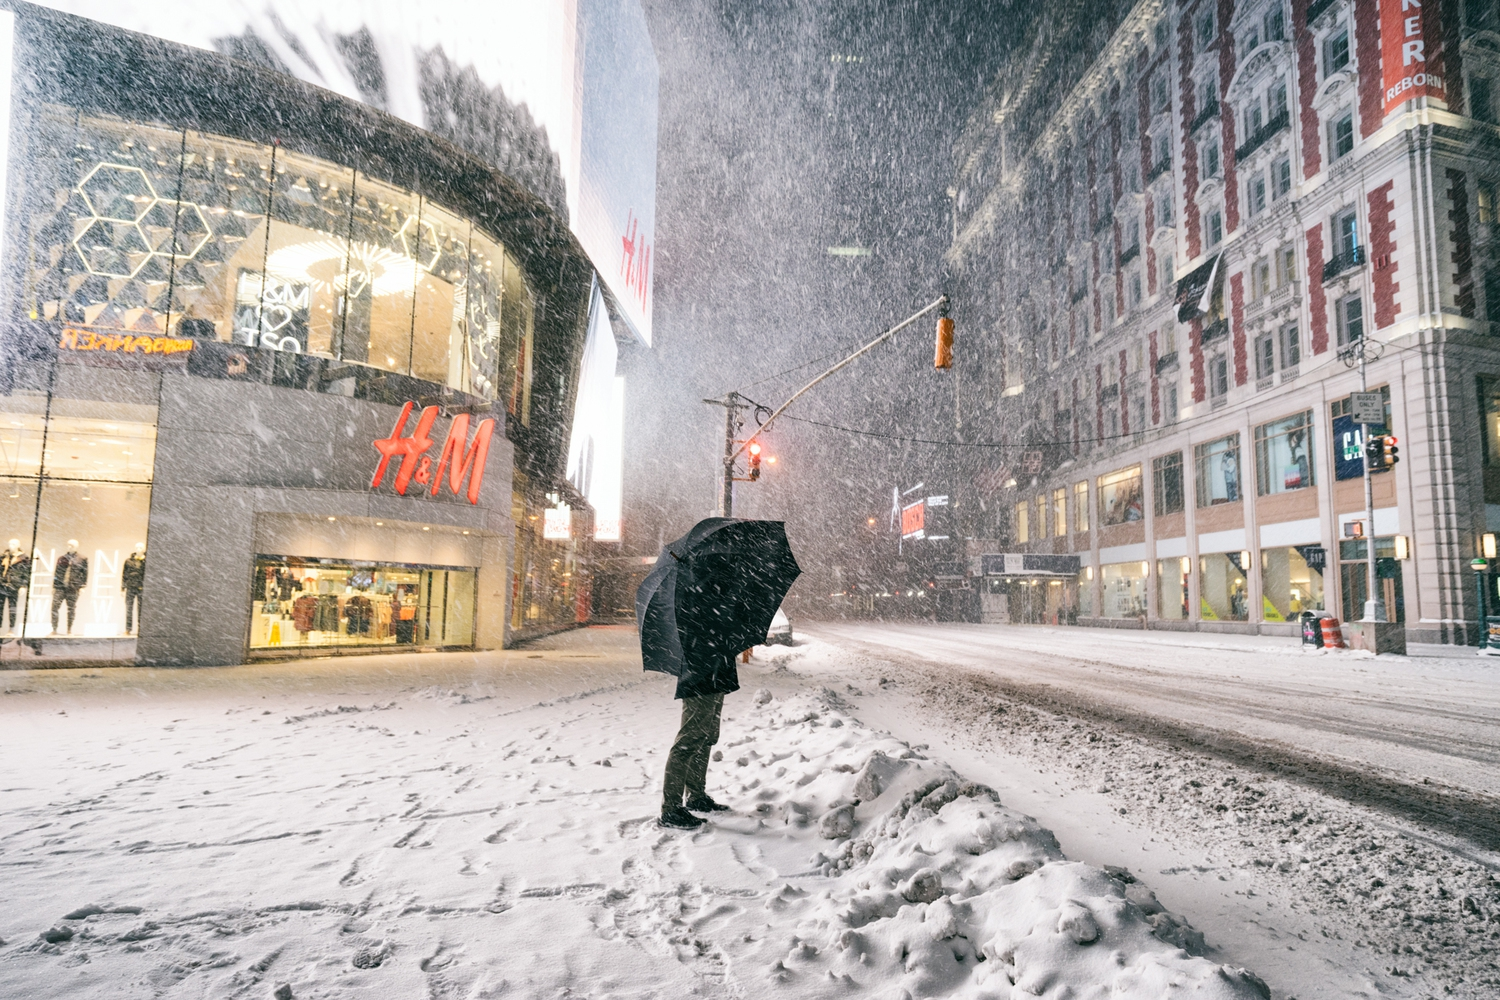 "New York City - Snow - Winter Storm Juno - Times Square | Juno: The first snowstorm of 2015 in New York City.  ---  (Note: My <a href=""http://www.amazon.com/gp/product/1440339589/ref=as_li_tl?ie=UTF8&camp=1789&creative=9325&creativeASIN=1440339589&linkCode=as2&tag=nyththle0e-20&linkId=ER6GYT5FRYNMEPLF"" rel=""nofollow"">New York photography book</a> released worldwide in stores/online recently and has photos similar to this  [full info below])  ---  I have been photographing New York City during snowstorms at night for the past 5 years. When it comes to experiencing <a href=""http://nythroughthelens.com/tagged/snow"" rel=""nofollow"">New York City in the snow</a>, I relish the challenge. The more gusty, snowy, and brutal the storm, the more of a chance that I will be out in it traipsing around New York City with my cameras in tow.  When I heard that the MTA was suspending all transit service (and most vehicles) at 11 pm, I made the decision to take the train up to the Upper East Side prior to 11 pm to deposit myself up there with the intention of walking from the Upper East Side to Times Square and then walking the several miles back to the Lower East Side (whew!!).  The streets were eerily empty.  Emptier than they are usually at night during snowfall. Since there was a ban on all vehicles aside from snow plows and emergency services, there were practically no cars at all on the streets. Even taxis were banned from the streets!  I walked in the middle of avenues and streets that are usually teeming with cars.  There was an eerie sense of calm.  It was magical.   ---  This is part of a post that I posted to my NYC photography blog. If you are curious enough to look at the photos there, here is the link to the post:  <a href=""http://nythroughthelens.com/post/109291619025/new-york-city-snow-winter-storm-juno-i"" rel=""nofollow"">New York City - Winter Storm Juno</a>   ----  * As mentioned above - My New York City coffee table book that released in stores/online worldwide recently.   Tons of information about my <a href=""http://www.amazon.com/gp/product/1440339589/ref=as_li_tl?ie=UTF8&camp=1789&creative=9325&creativeASIN=1440339589&linkCode=as2&tag=nyththle0e-20&linkId=ER6GYT5FRYNMEPLF"" rel=""nofollow"">New York photography book</a> with sample pages (including where to order and what stores are carrying it) here:  <a href=""http://nythroughthelens.com/post/92873566010/ny-through-the-lens-the-book-i-am-super"" rel=""nofollow"">NY Through The Lens: A New York Coffee Table Book</a> ---   View my New York City photography at my website <a href=""http://nythroughthelens.com/"" rel=""nofollow"">NY Through The Lens</a>.  View my Travel photography at my travel blog: <a href=""http://travelinglens.me/"" rel=""nofollow"">Traveling Lens</a>.  Interested in my work and have questions about PR and media? Check out my:  <a href=""http://nythroughthelens.com/about"" rel=""nofollow"">About Page</a> 